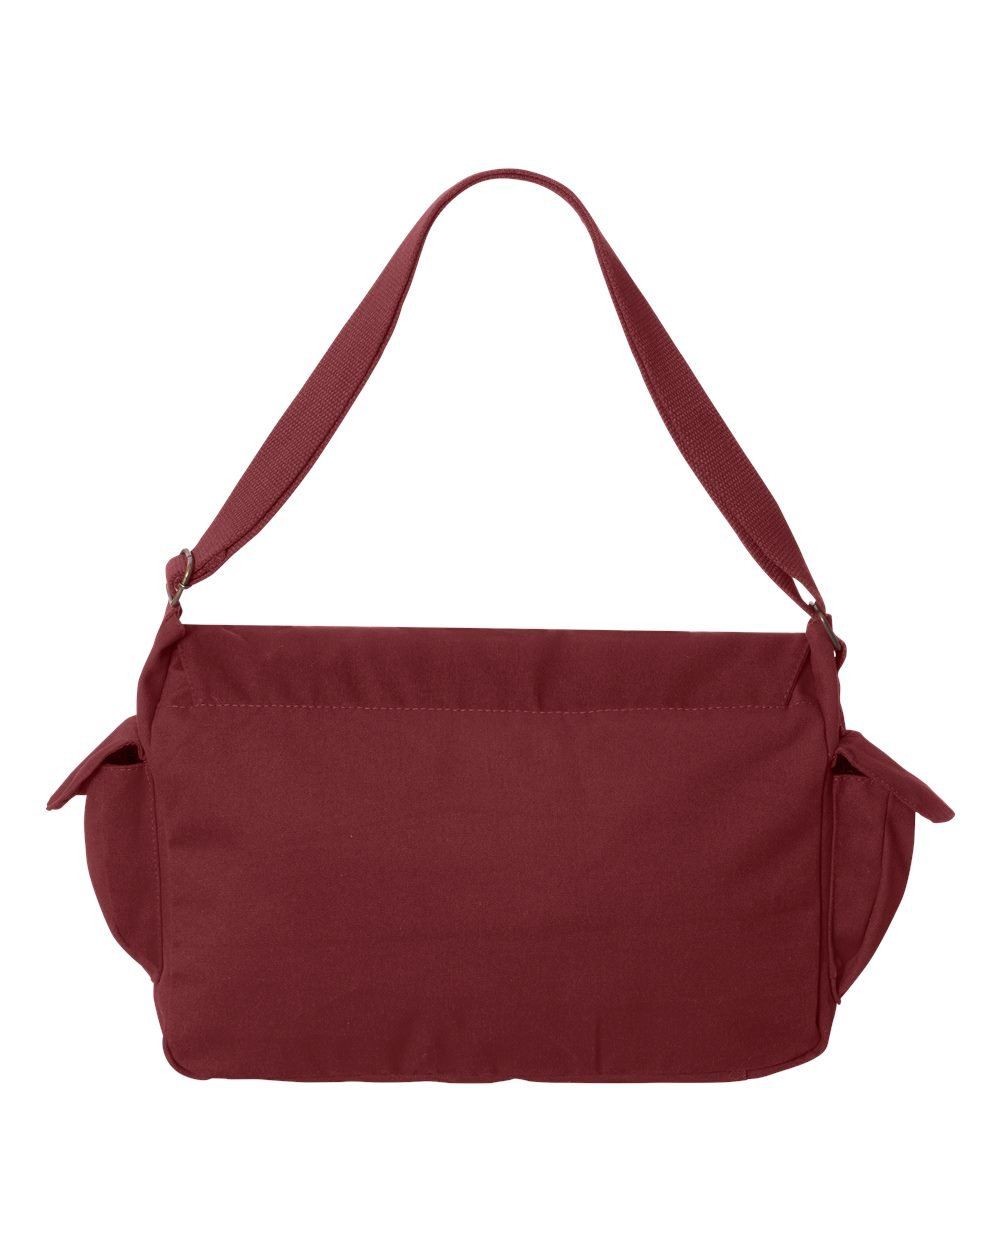 Tenacitee Born in 1932 Aged Like a Fine Wine Maroon Brushed Canvas Messenger Bag